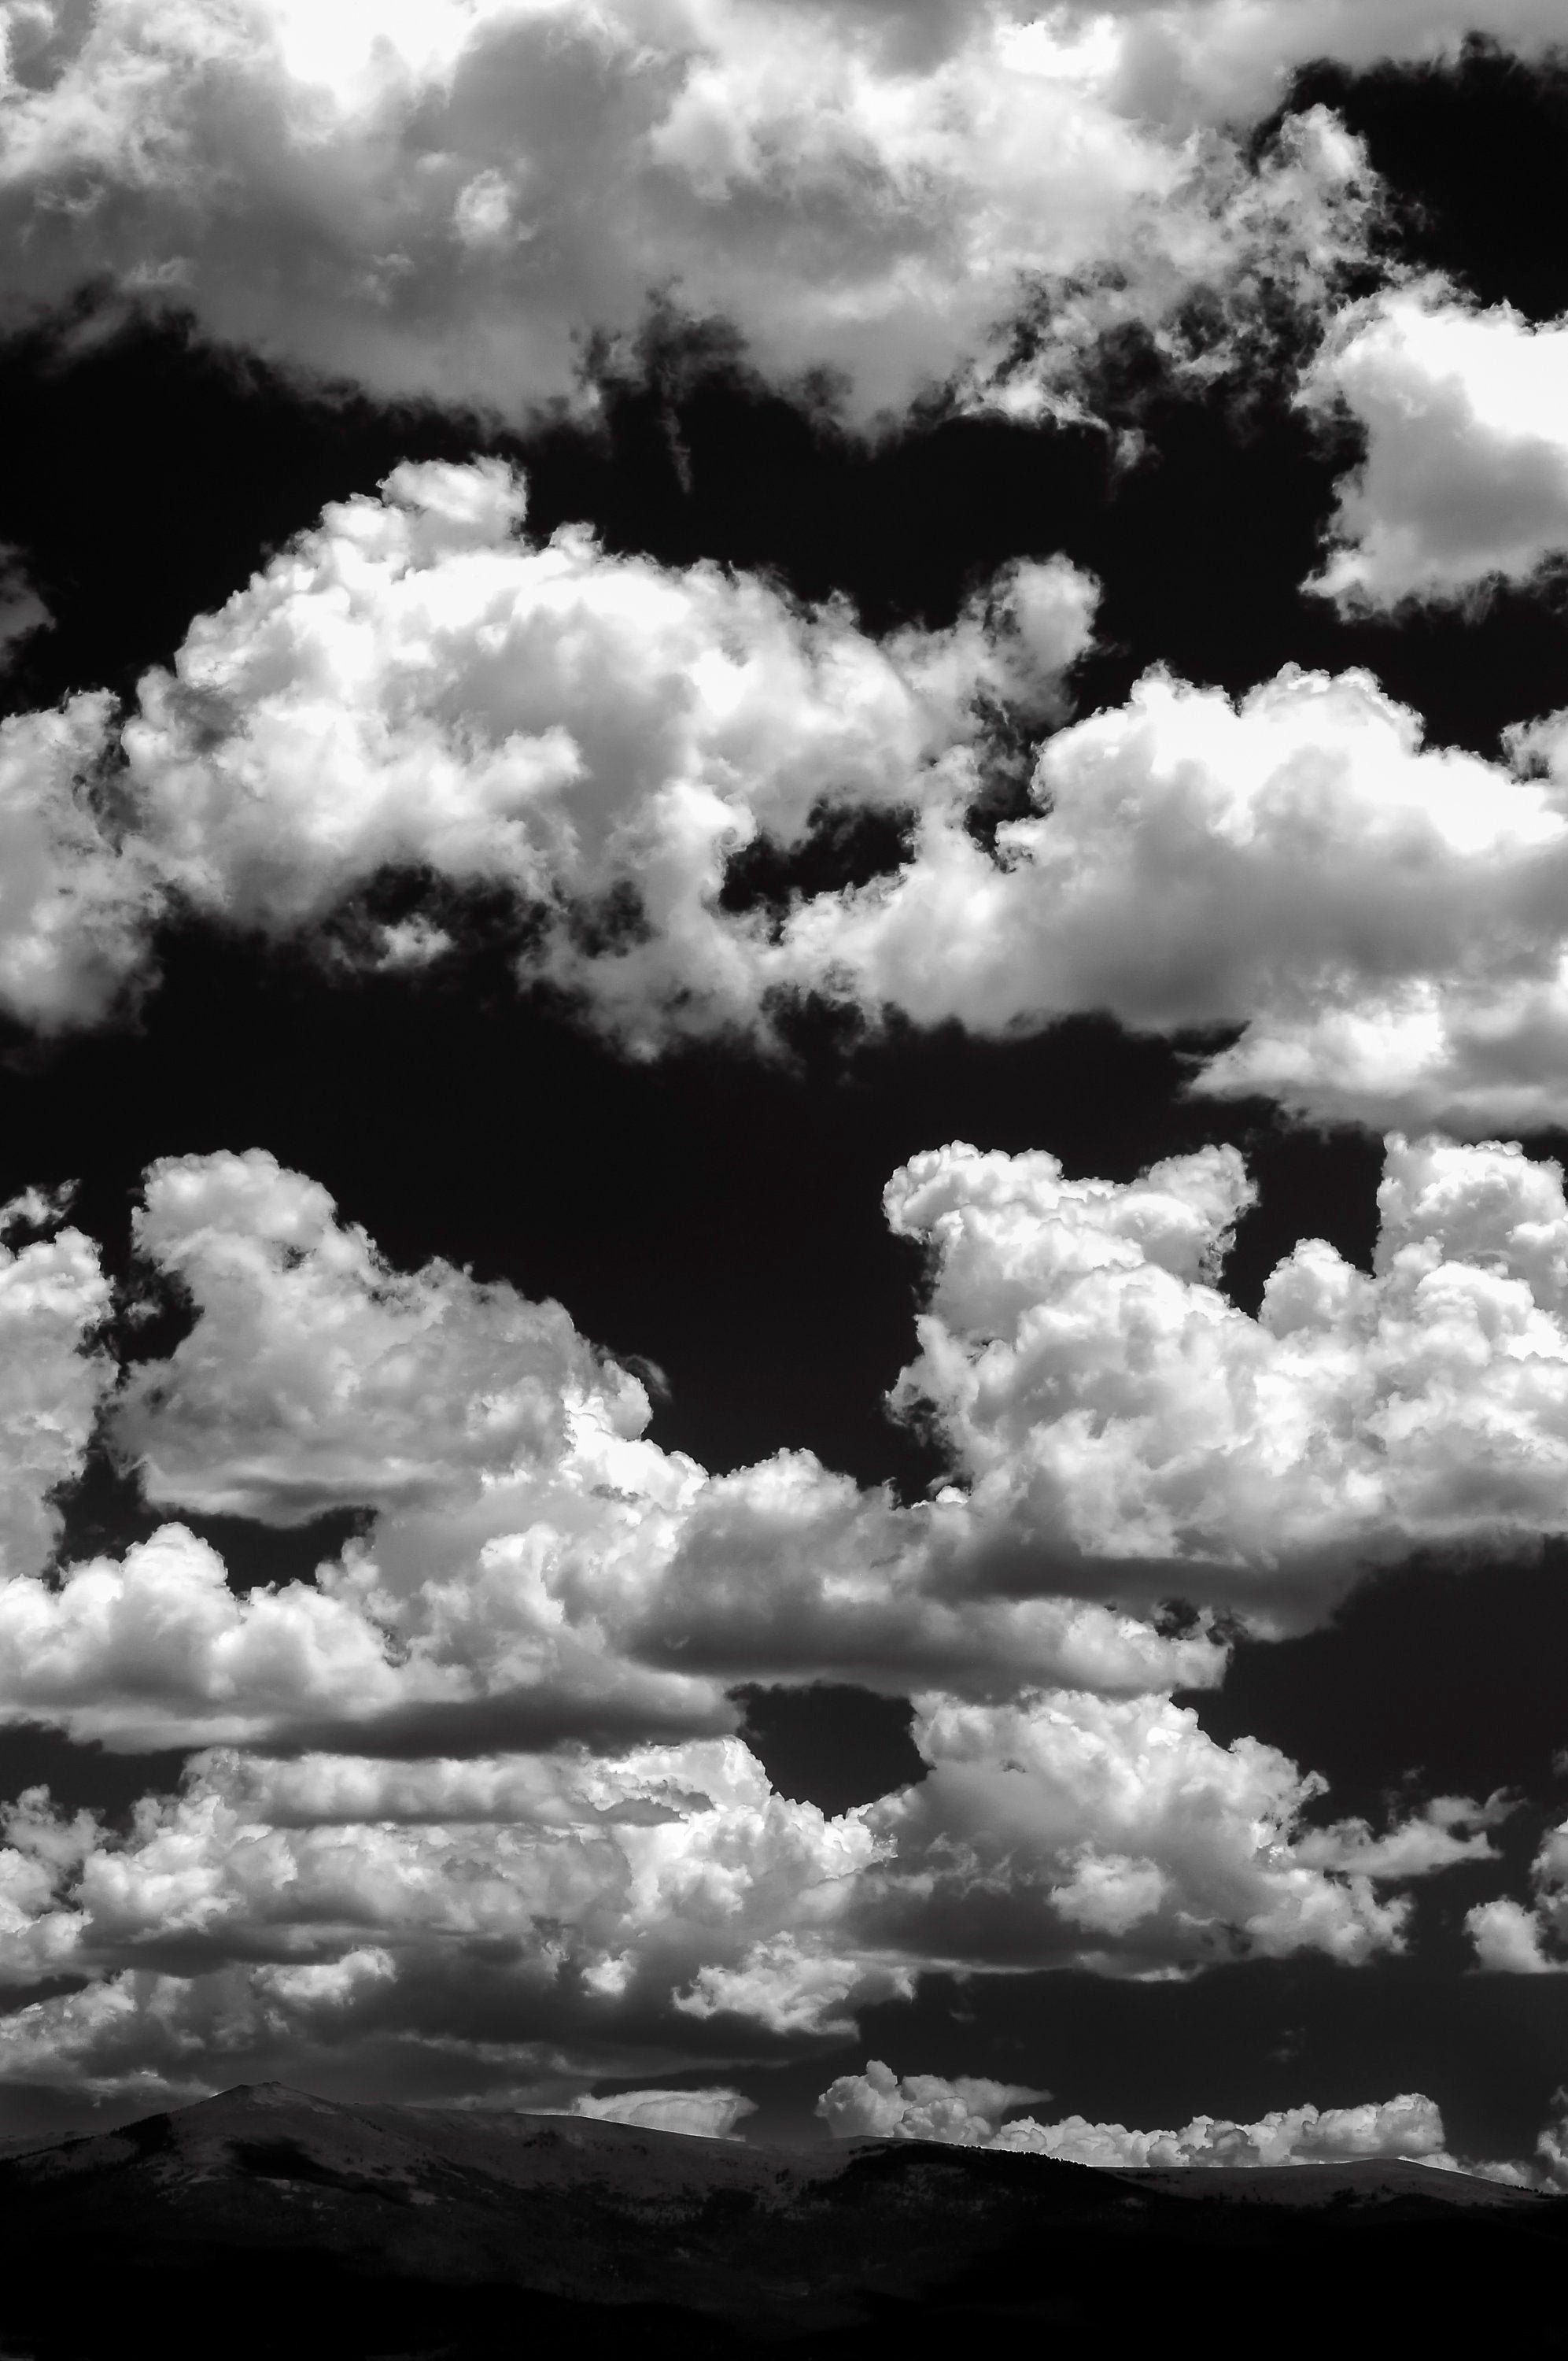 Clouds, summer, sky, mountains, Colorado art, Black White photo, puffy clouds, summer, weather, modern rustic wall decor, cabin decor